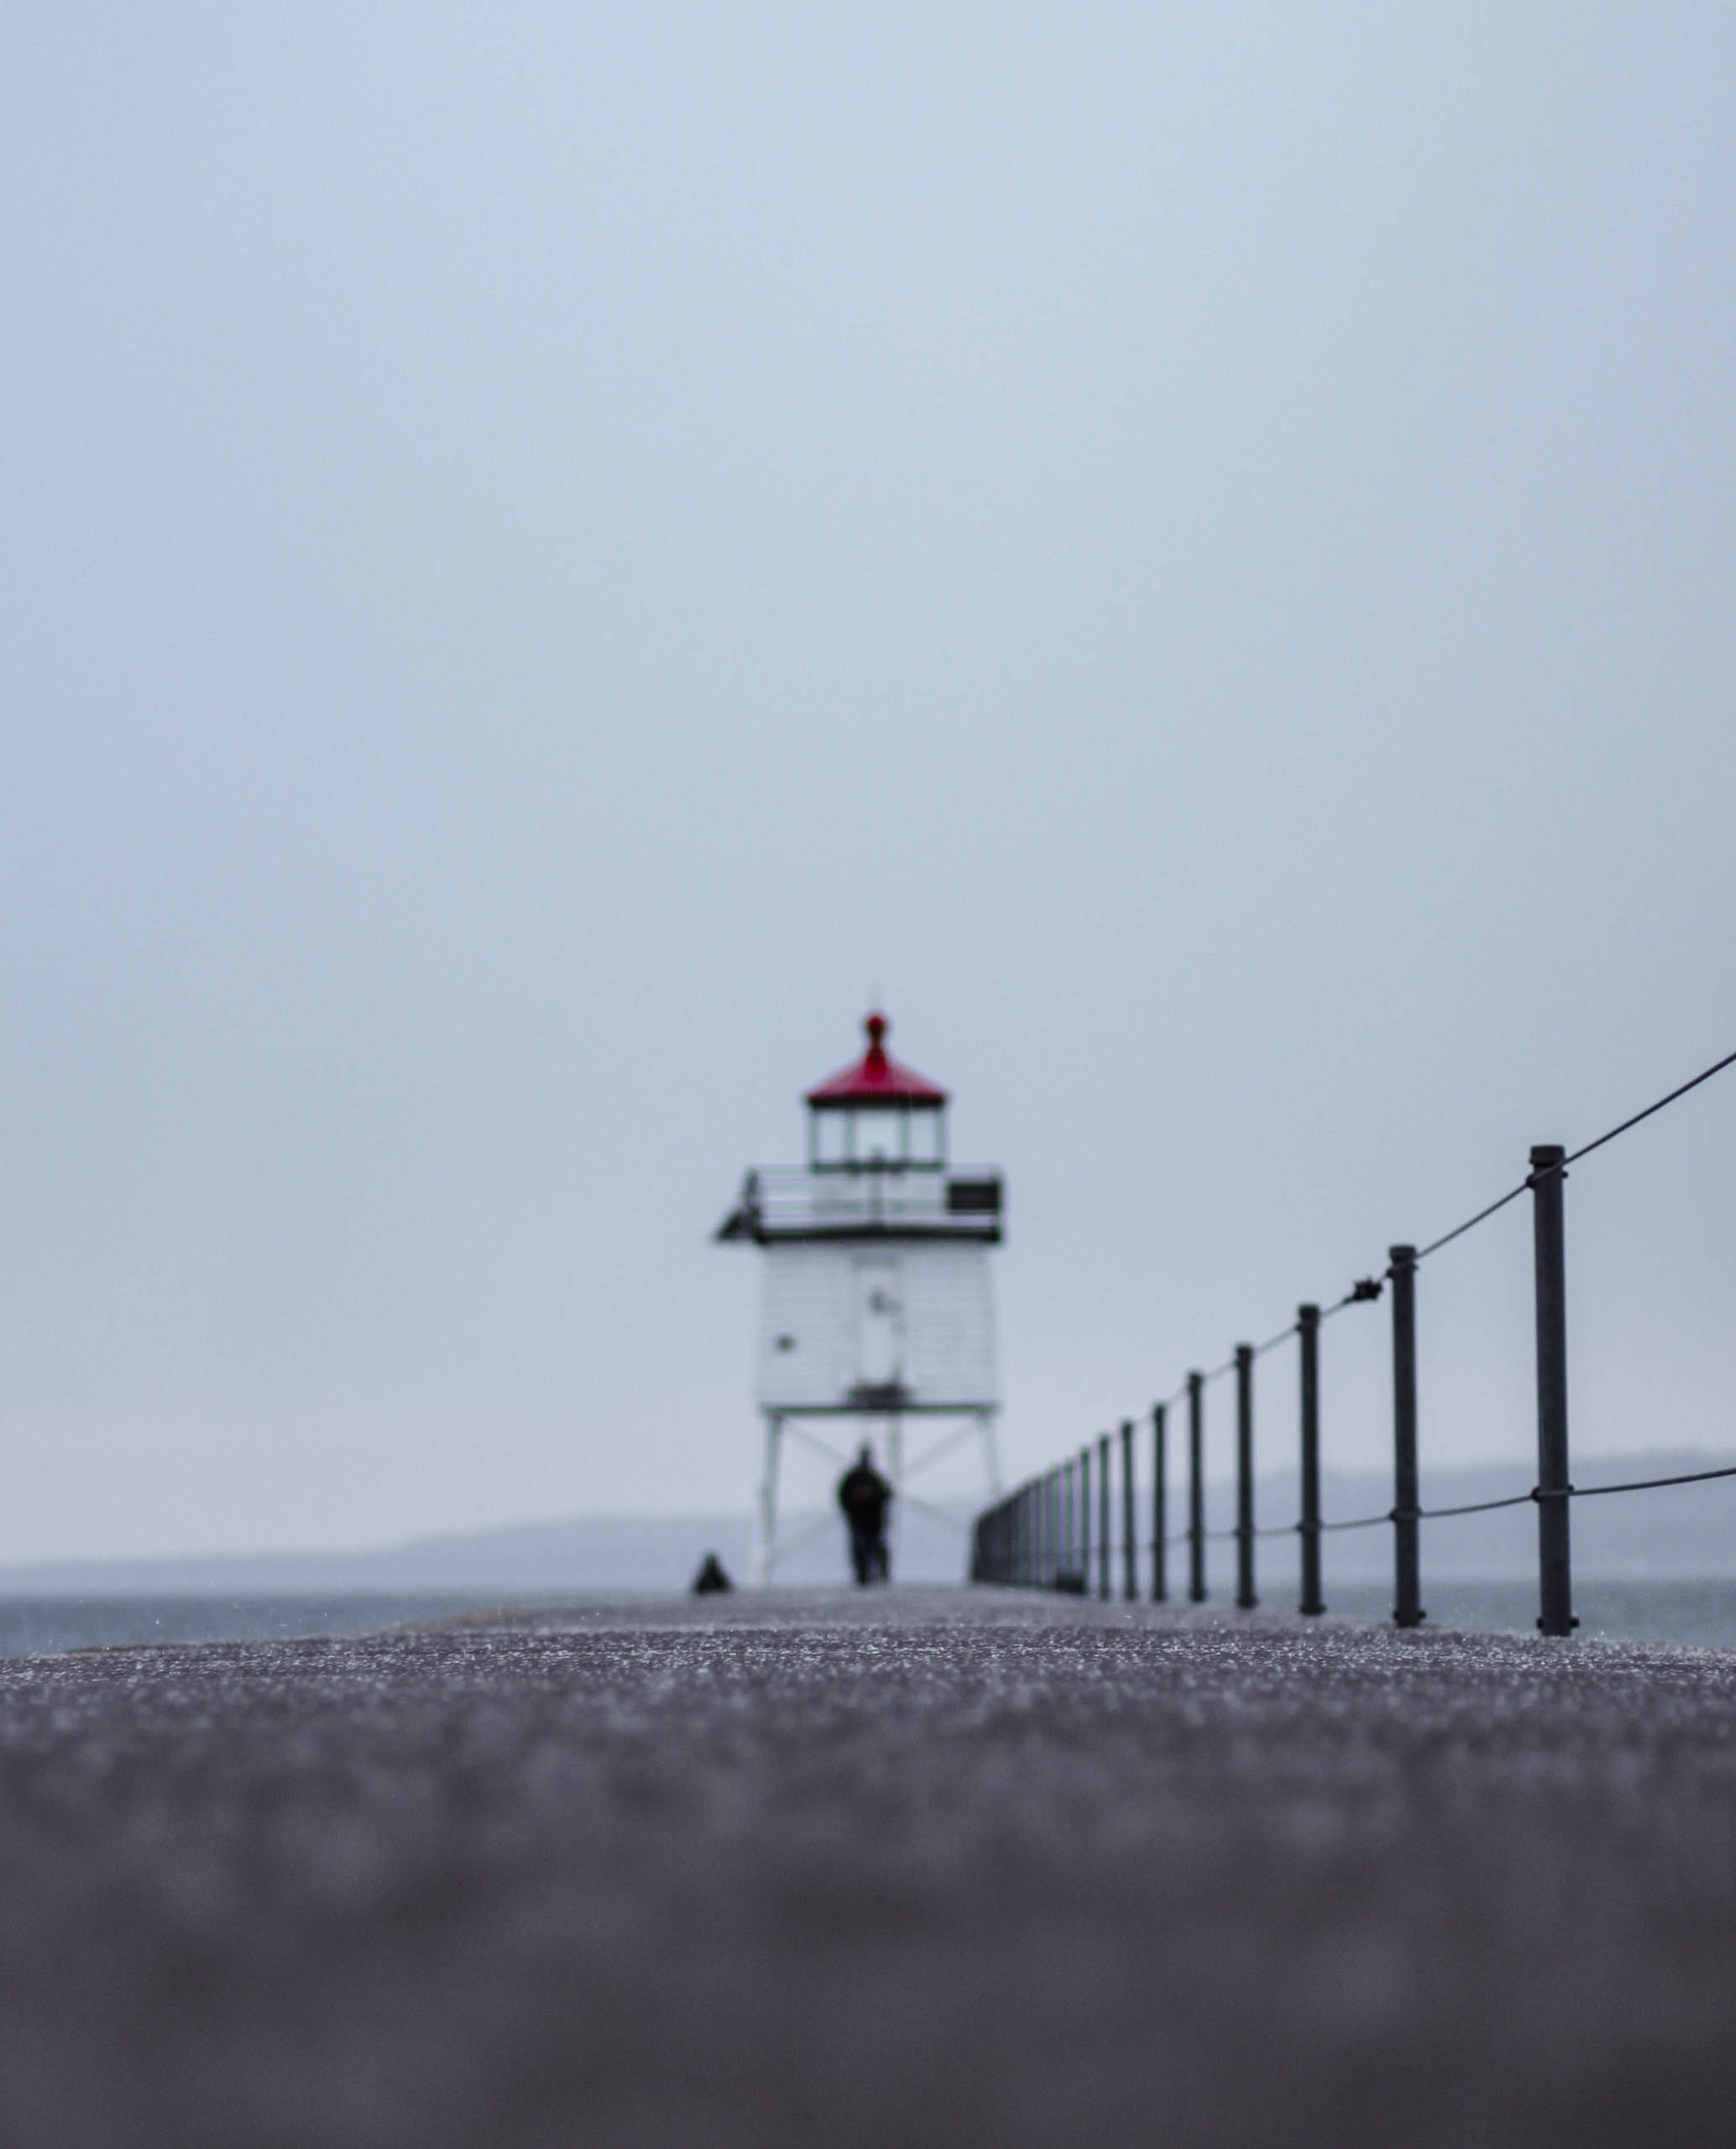 white lighthouse under gray sky during daytime